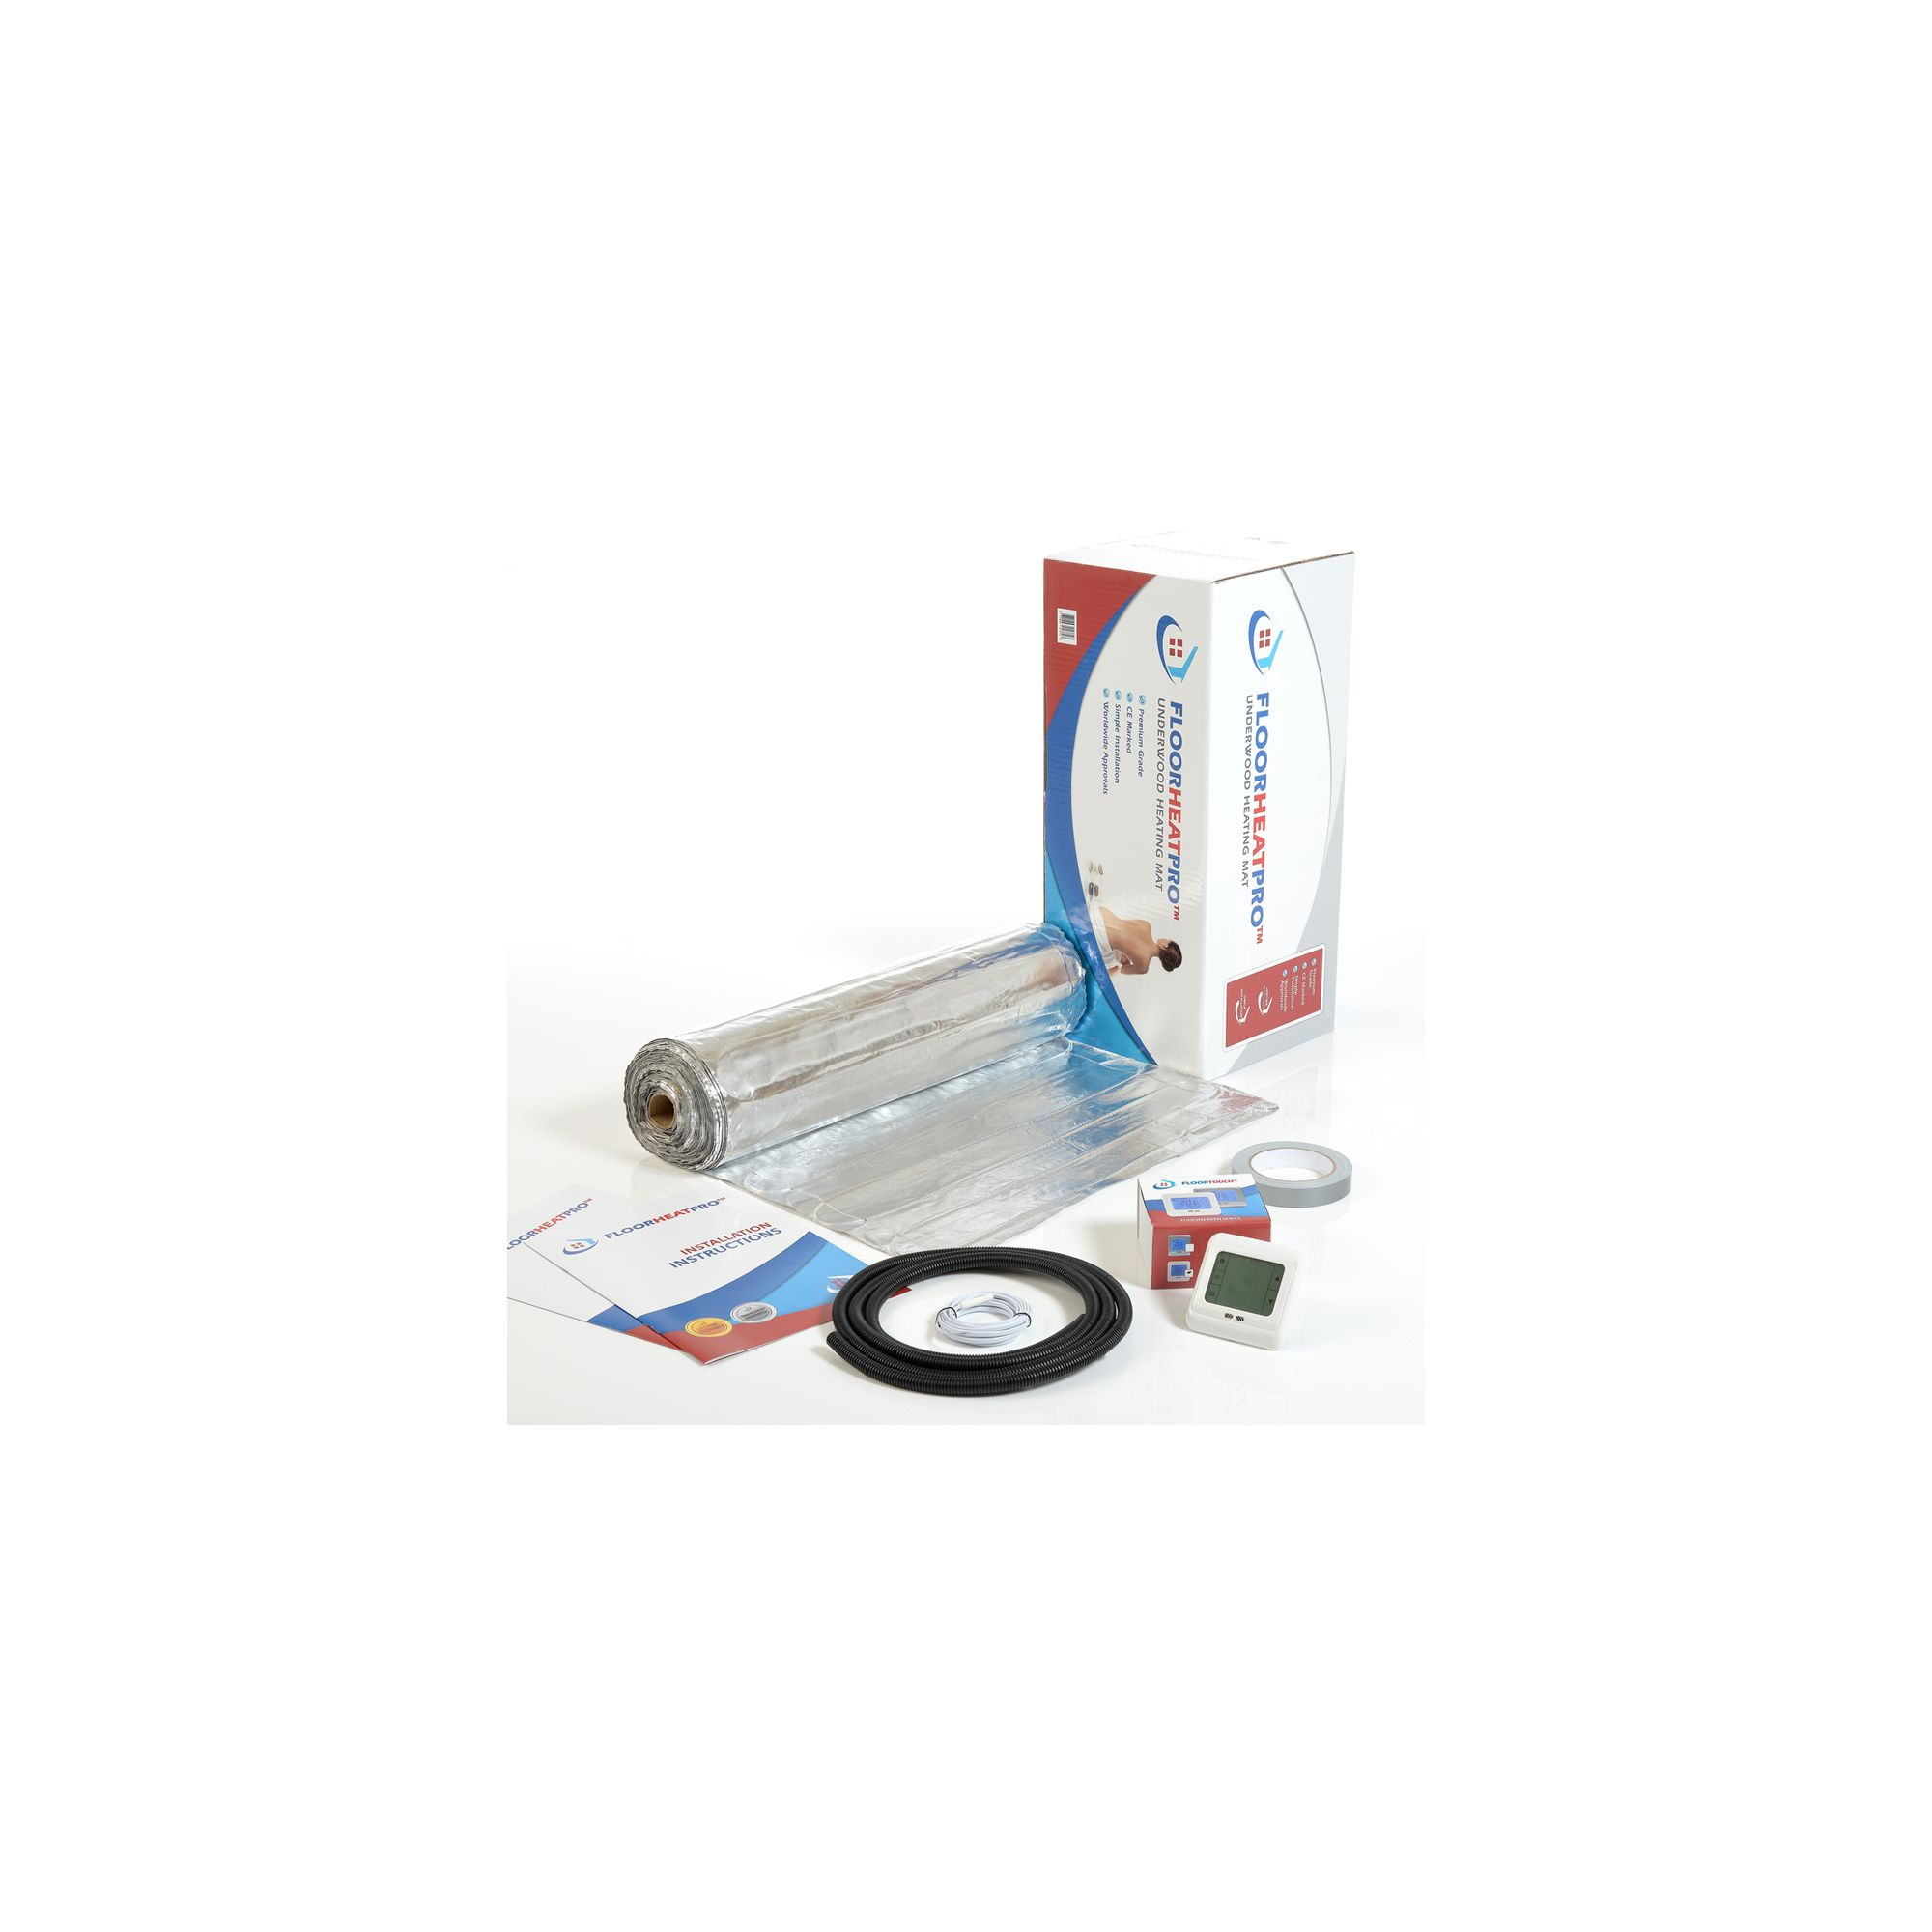 11.0 m2 - Underfloor Electric Heating Kit - Laminate at Tesco Direct